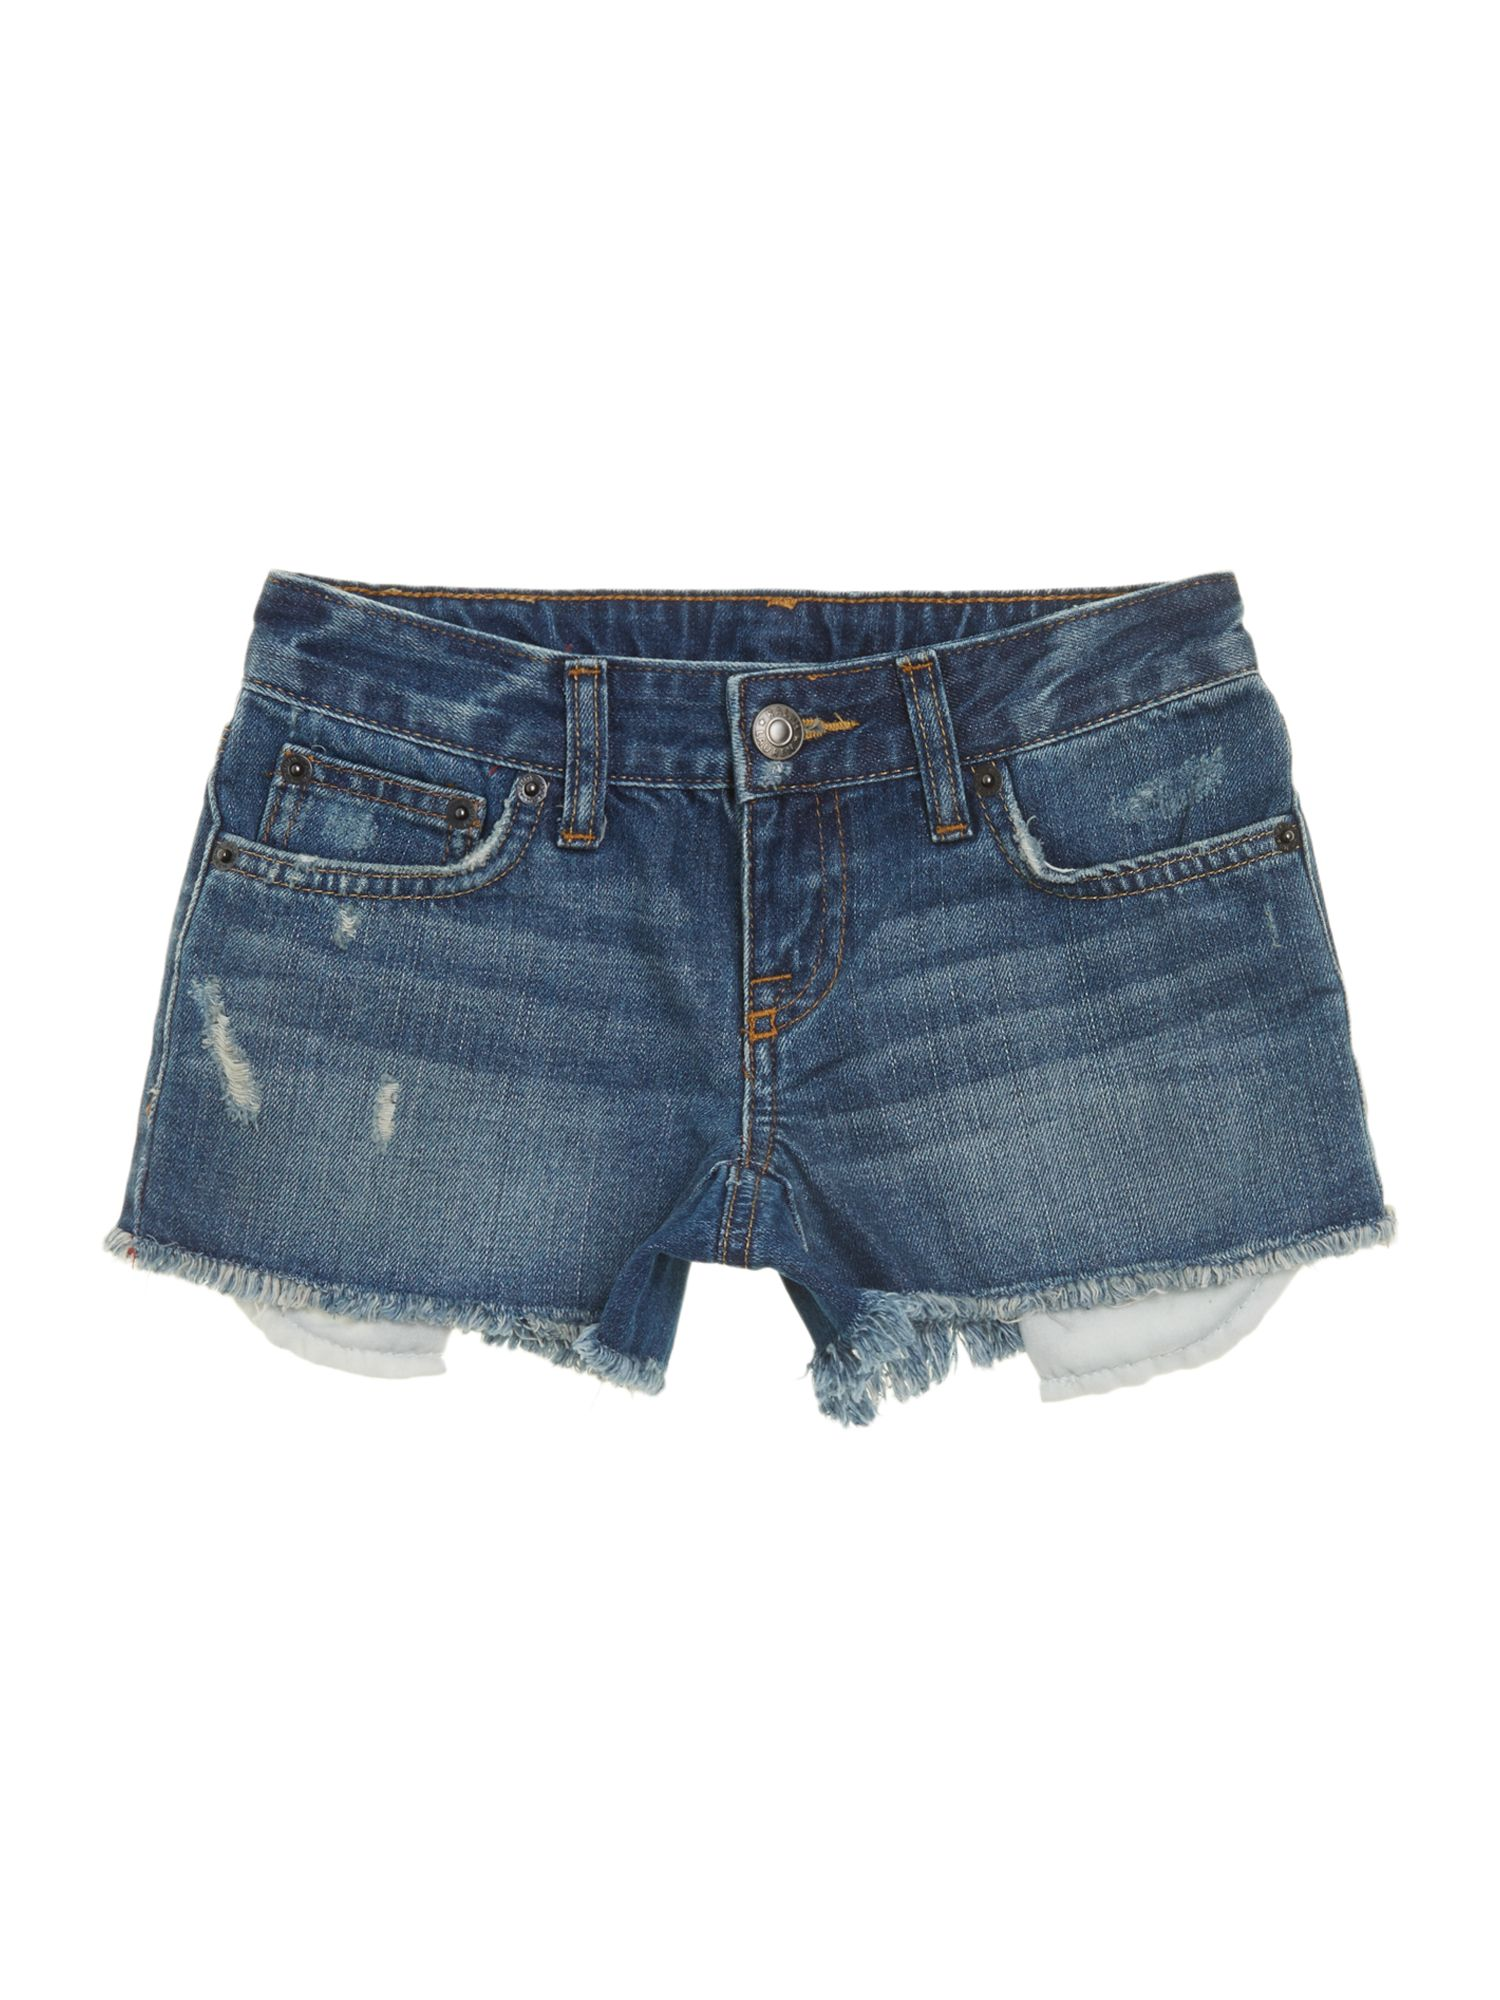 Girls cut off denim shorts